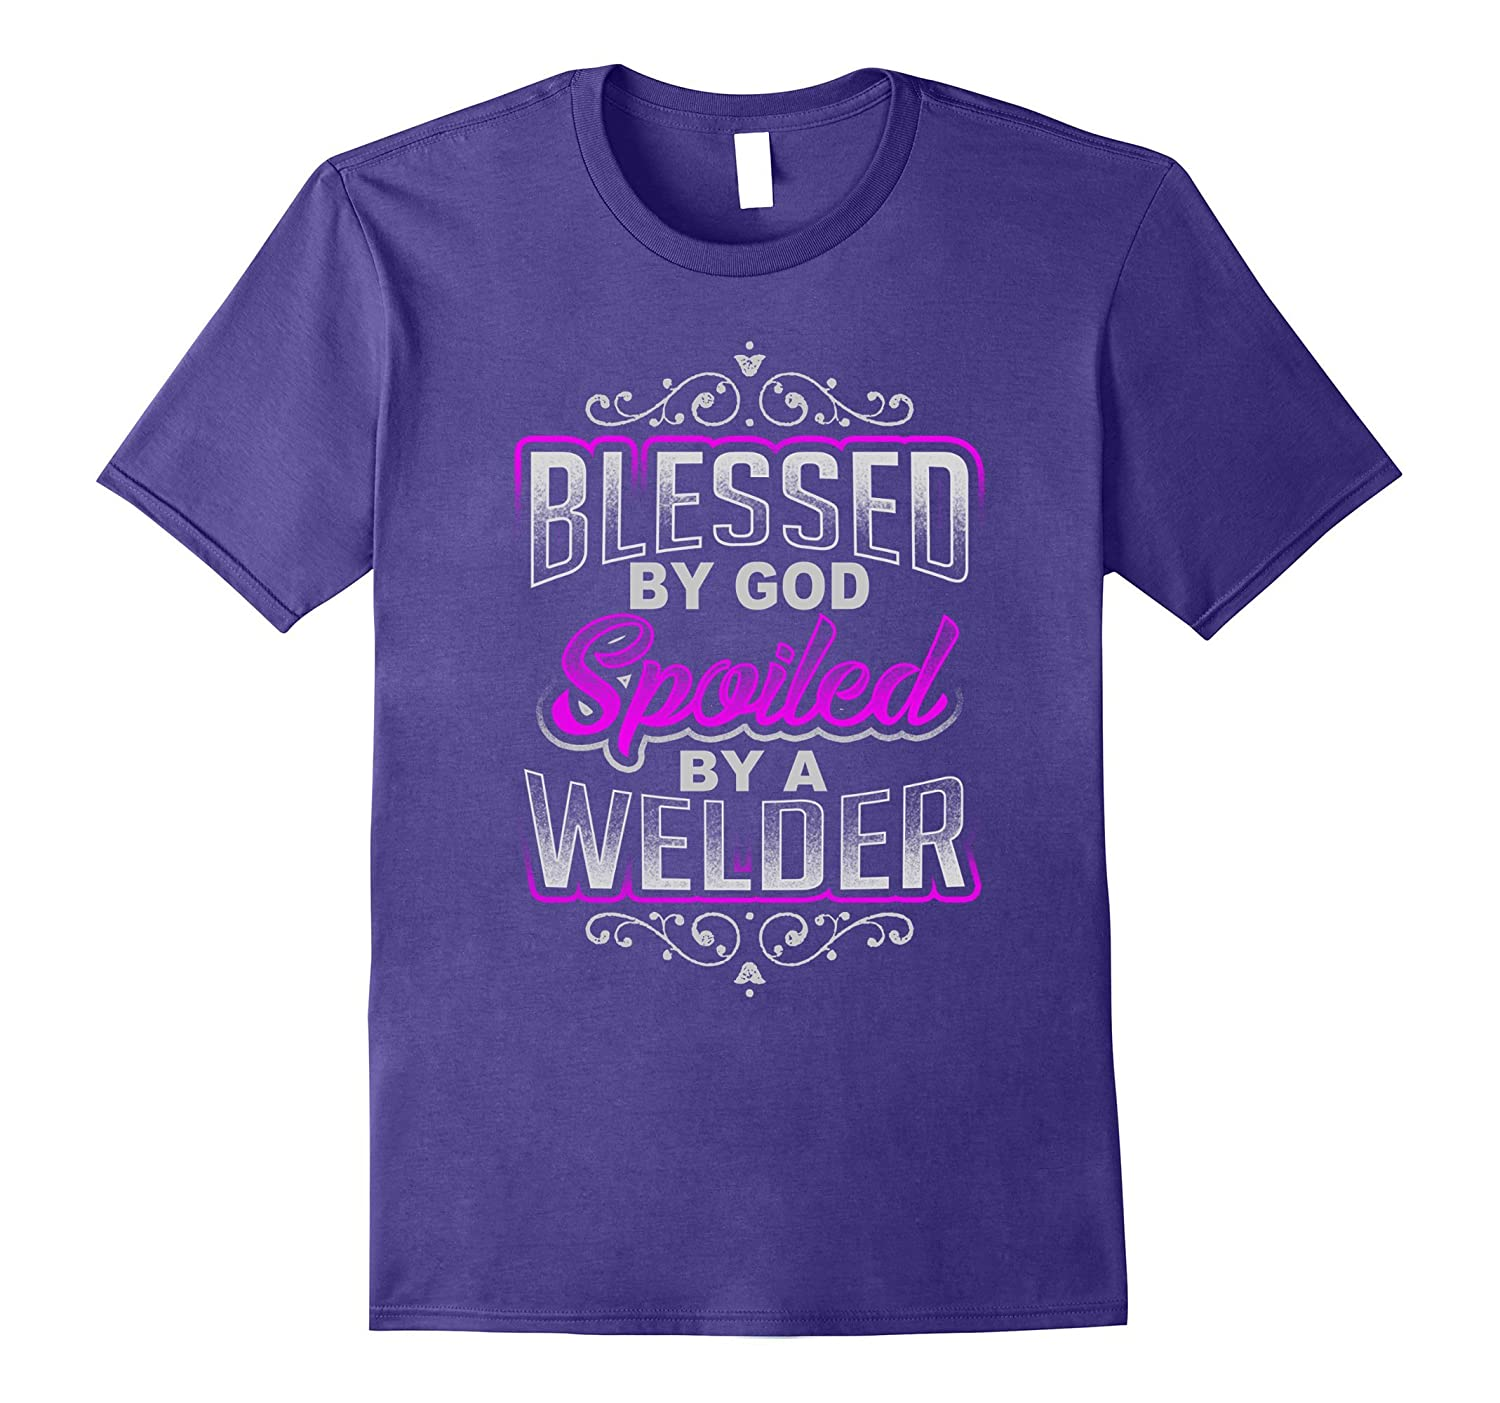 Blessed by God Spoiled by A Welder T-Shirt-TJ